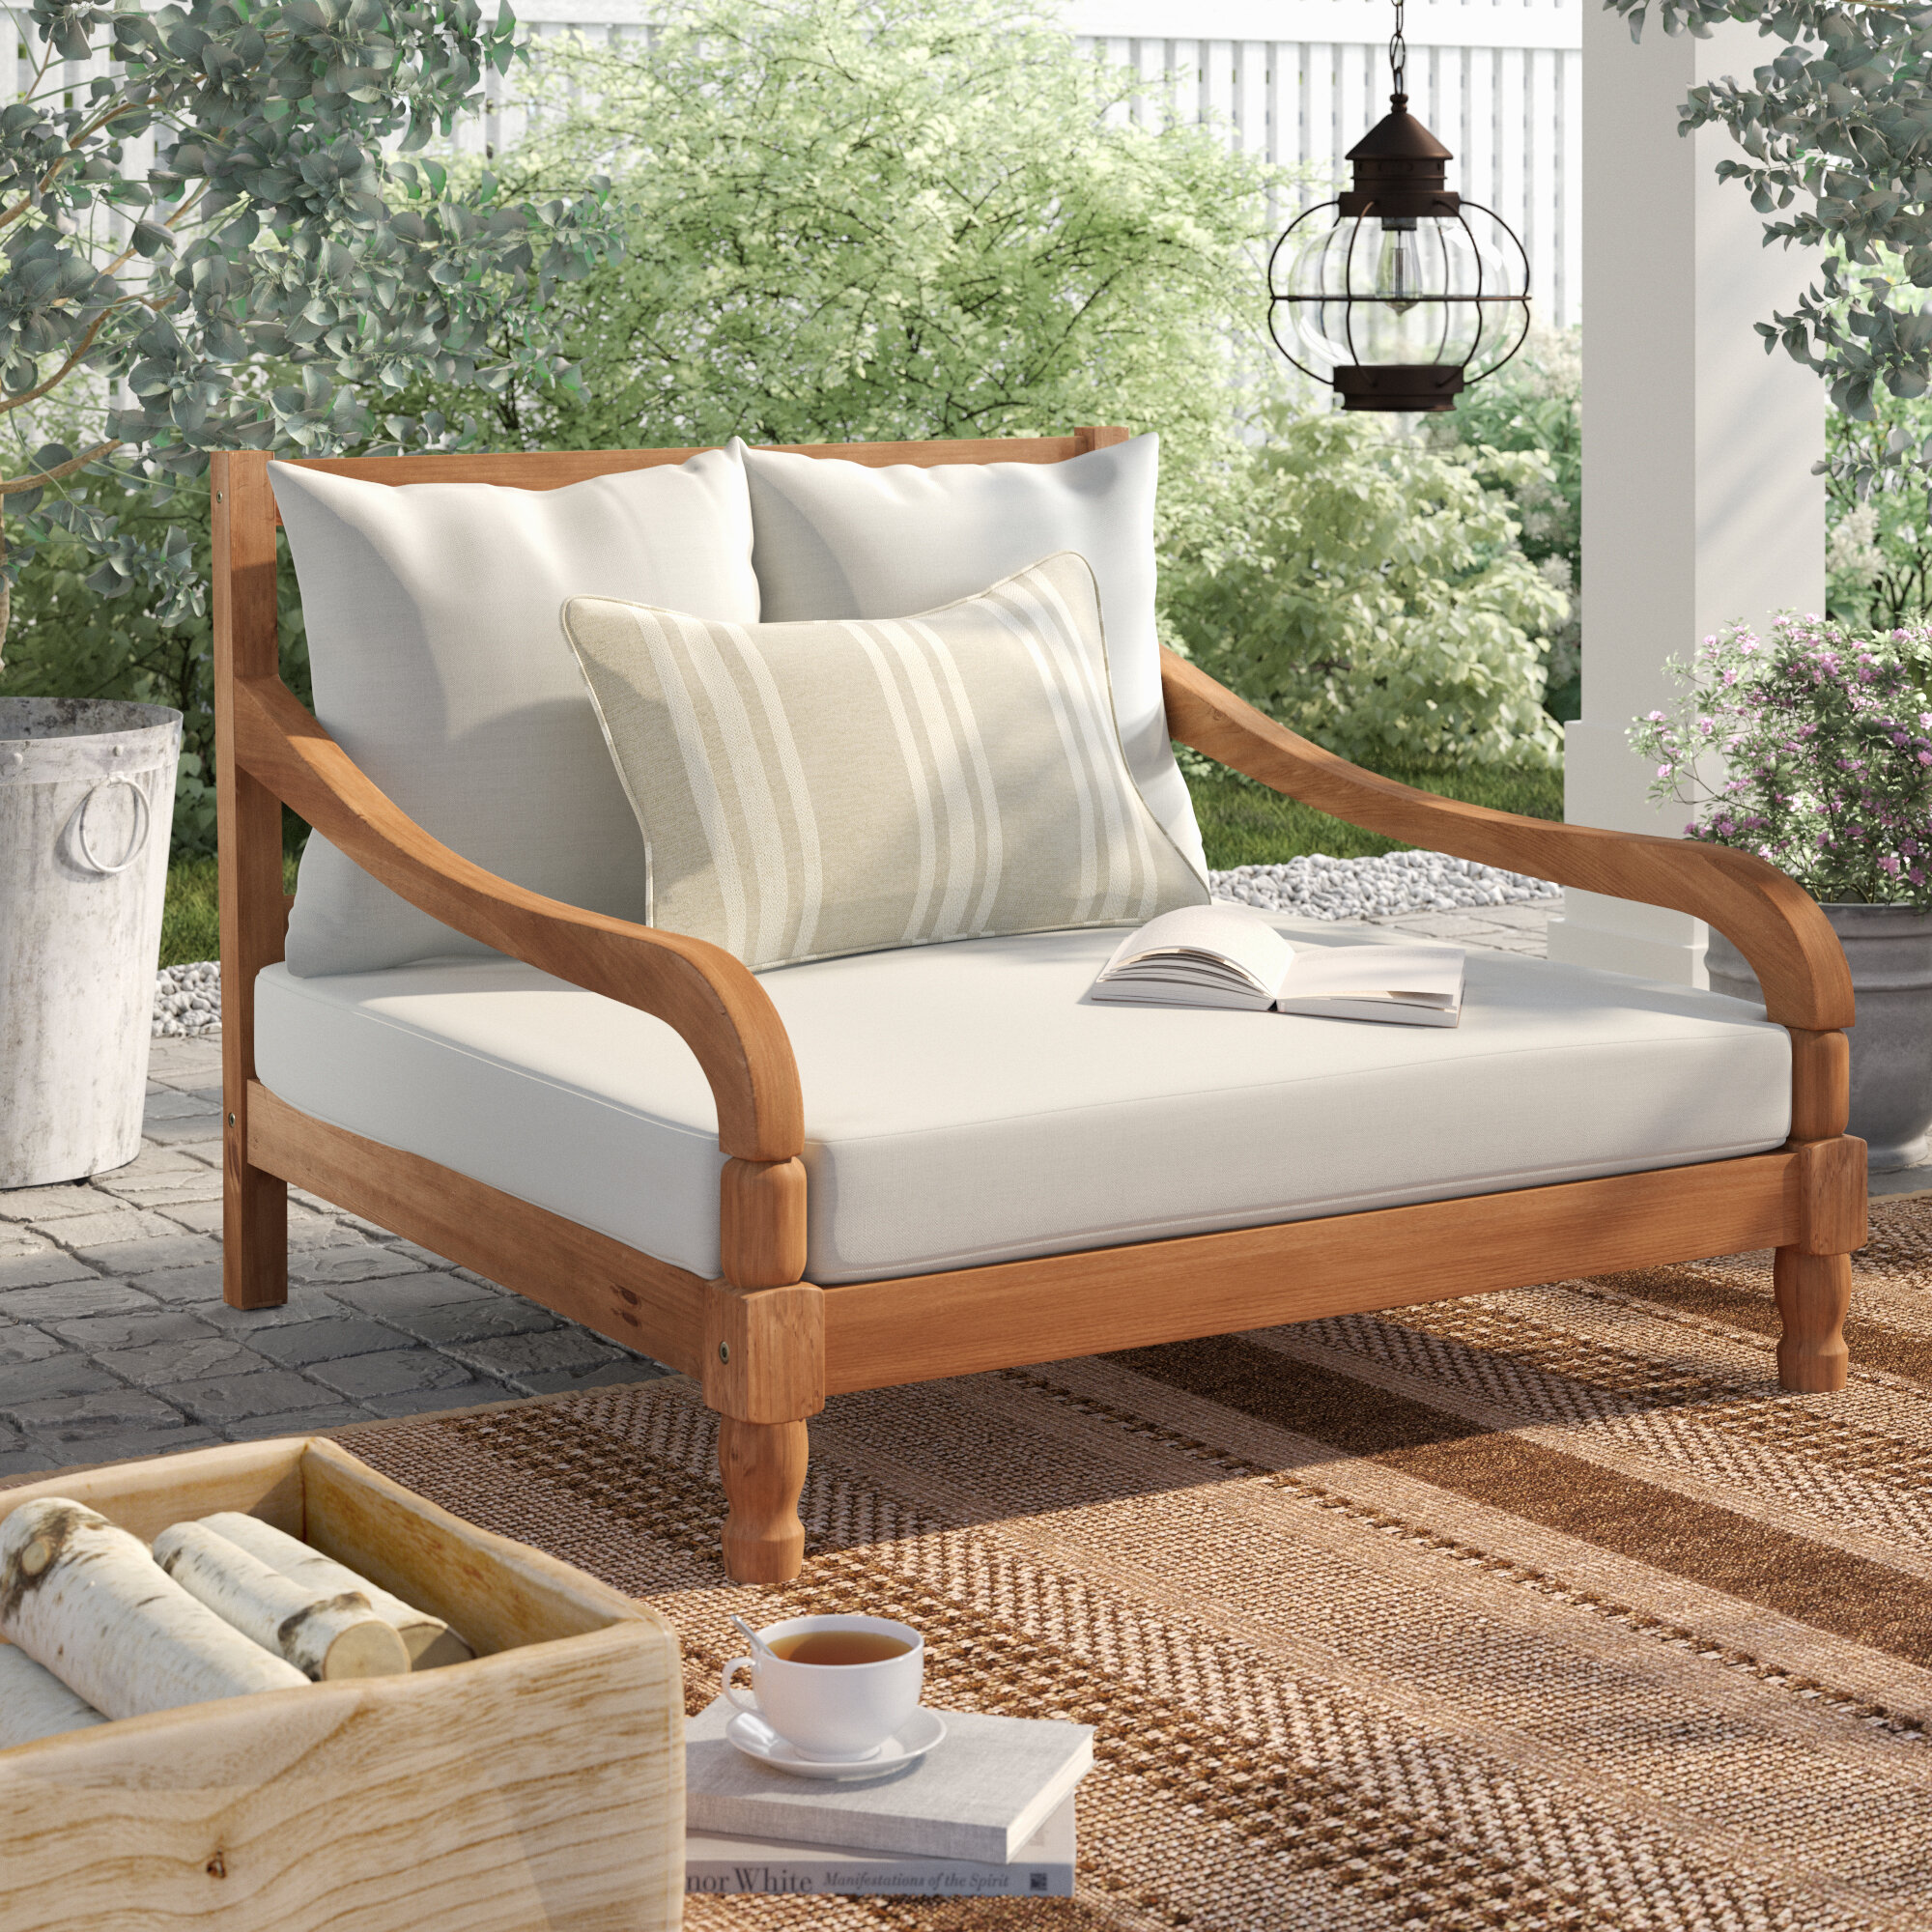 Birch lane heritage wiest patio daybed with cushions reviews birch lane